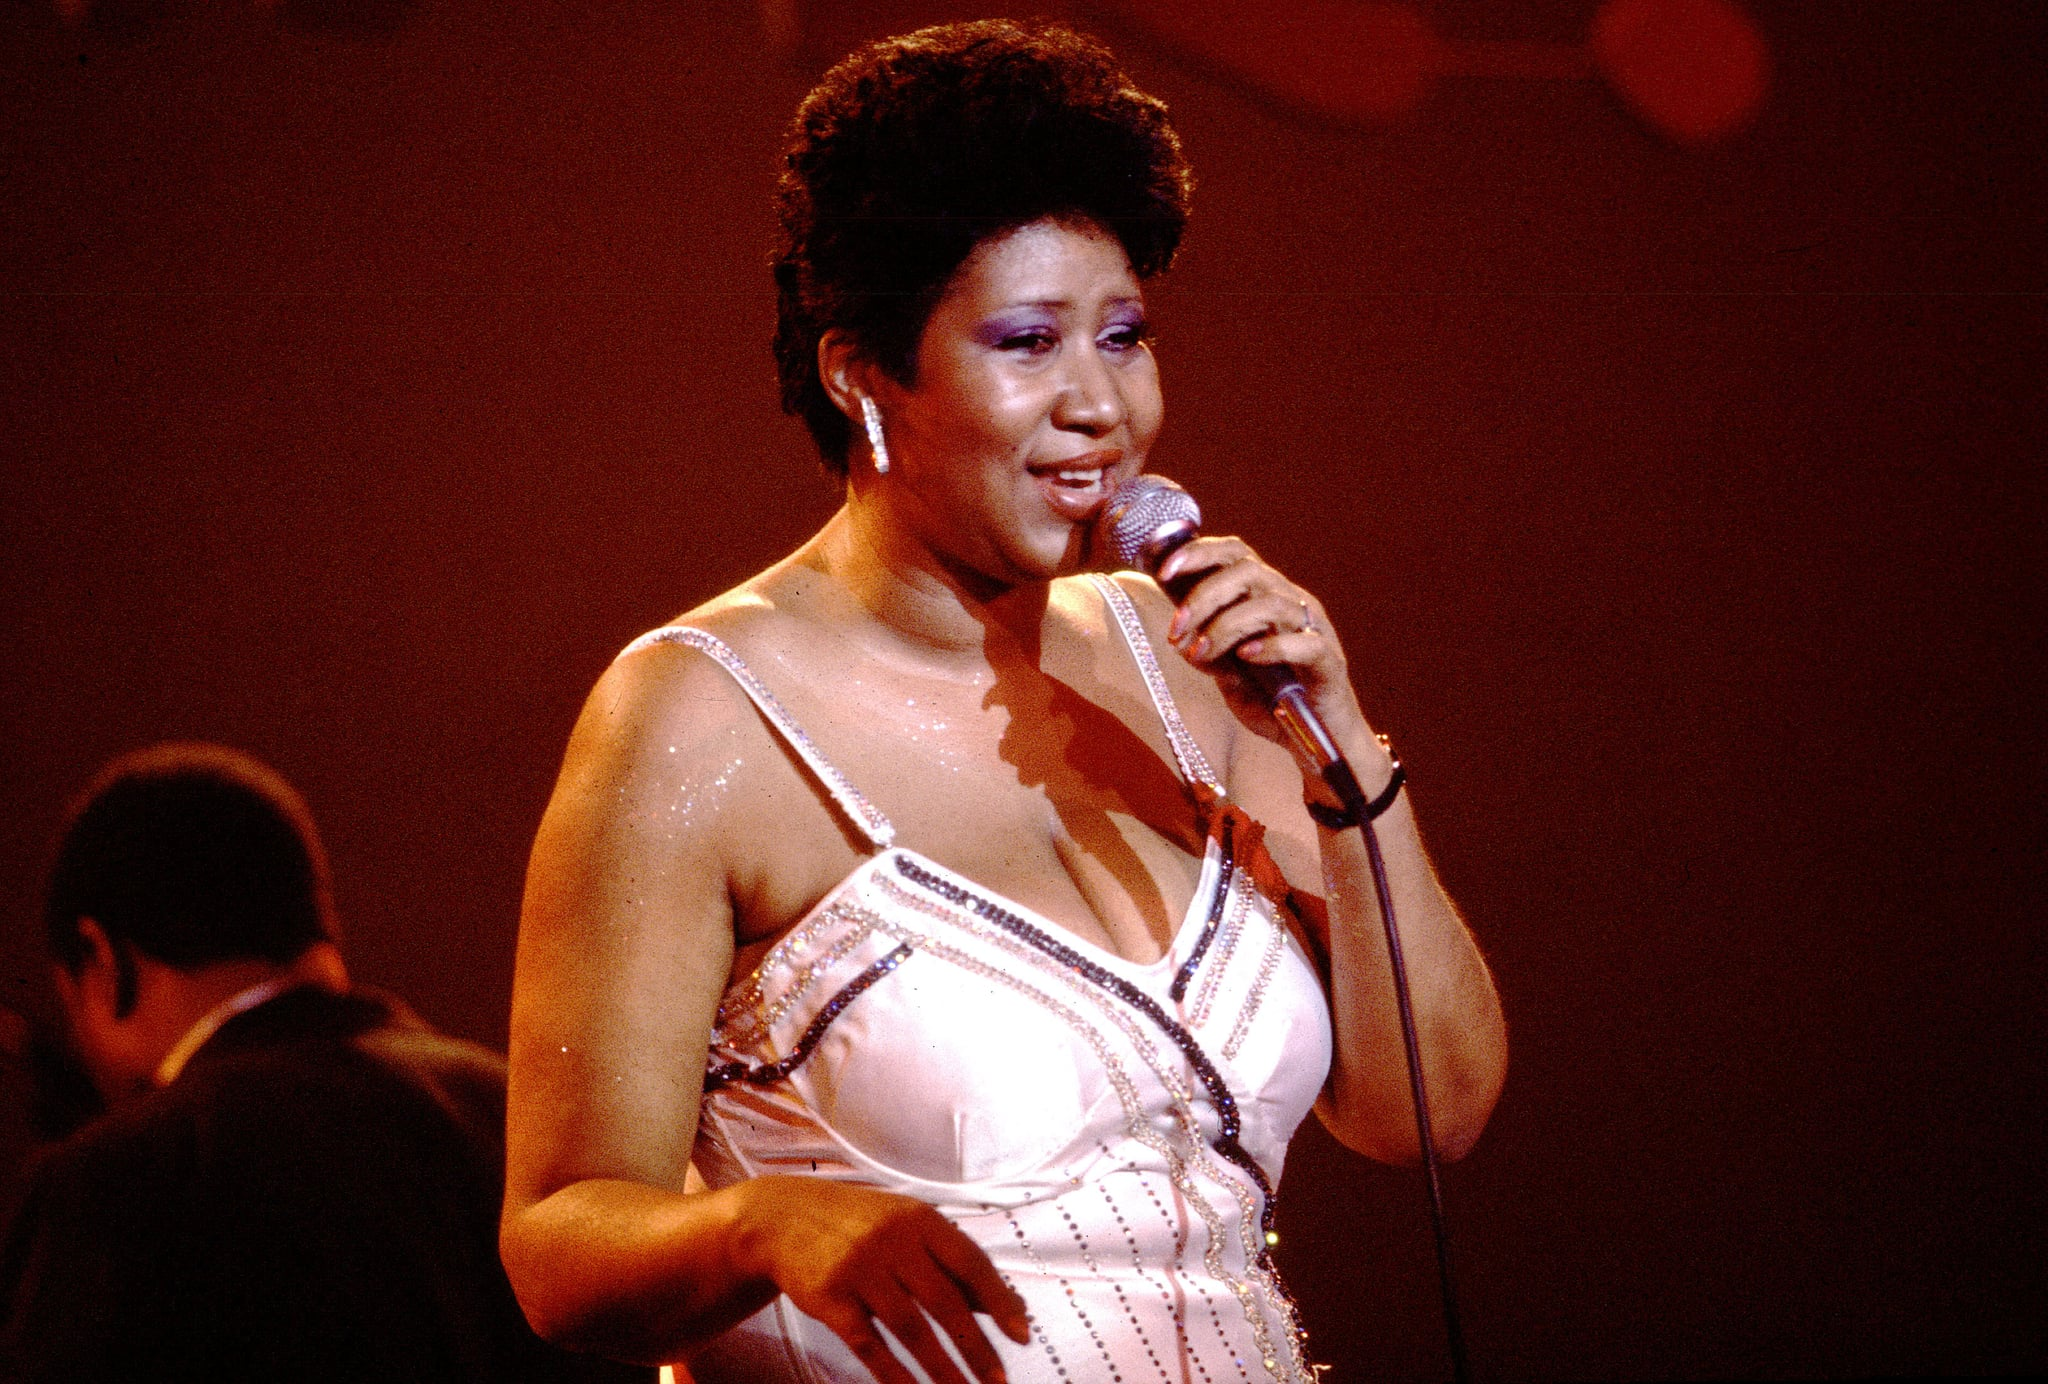 Aretha Franklin on 4/18/85 in Chicago, Il. in Various Locations, (Photo by Paul Natkin/WireImage)